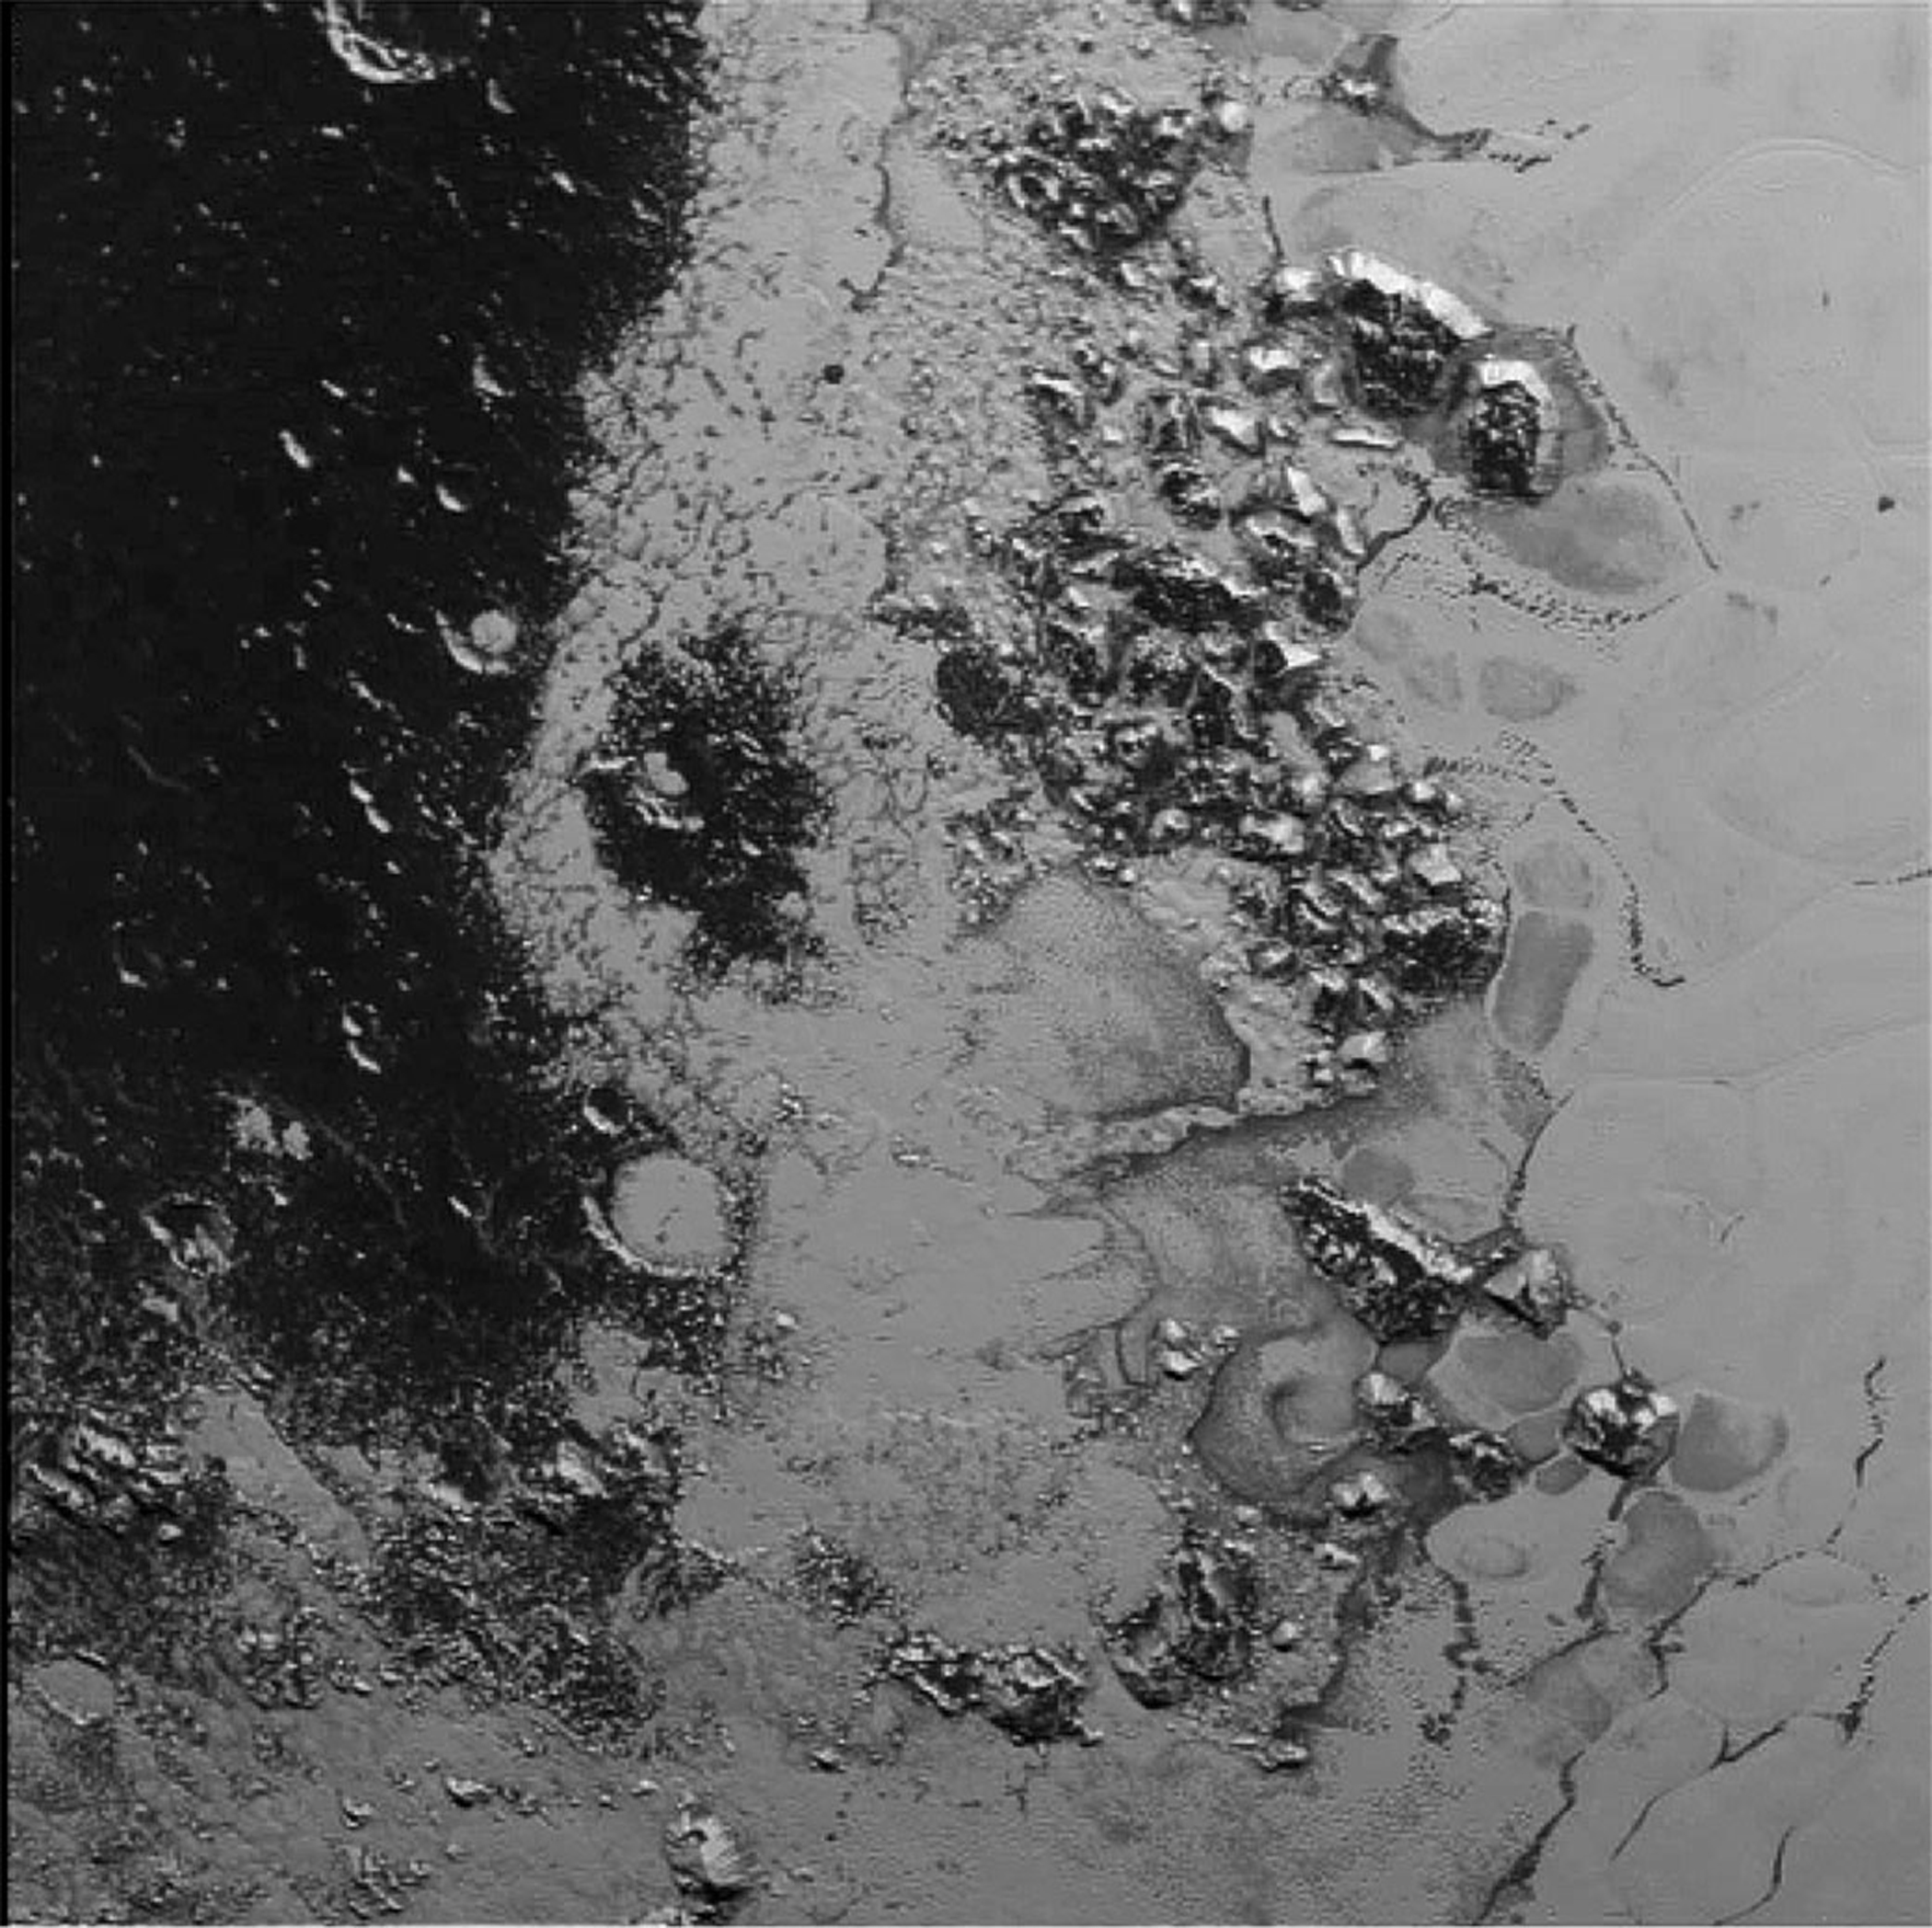 This photo shows the new mountain range discovered by NASA's New Horizons spacecraft on July 14, 2015 on Pluto, in a heart-shaped region named Tombaugh Regio.